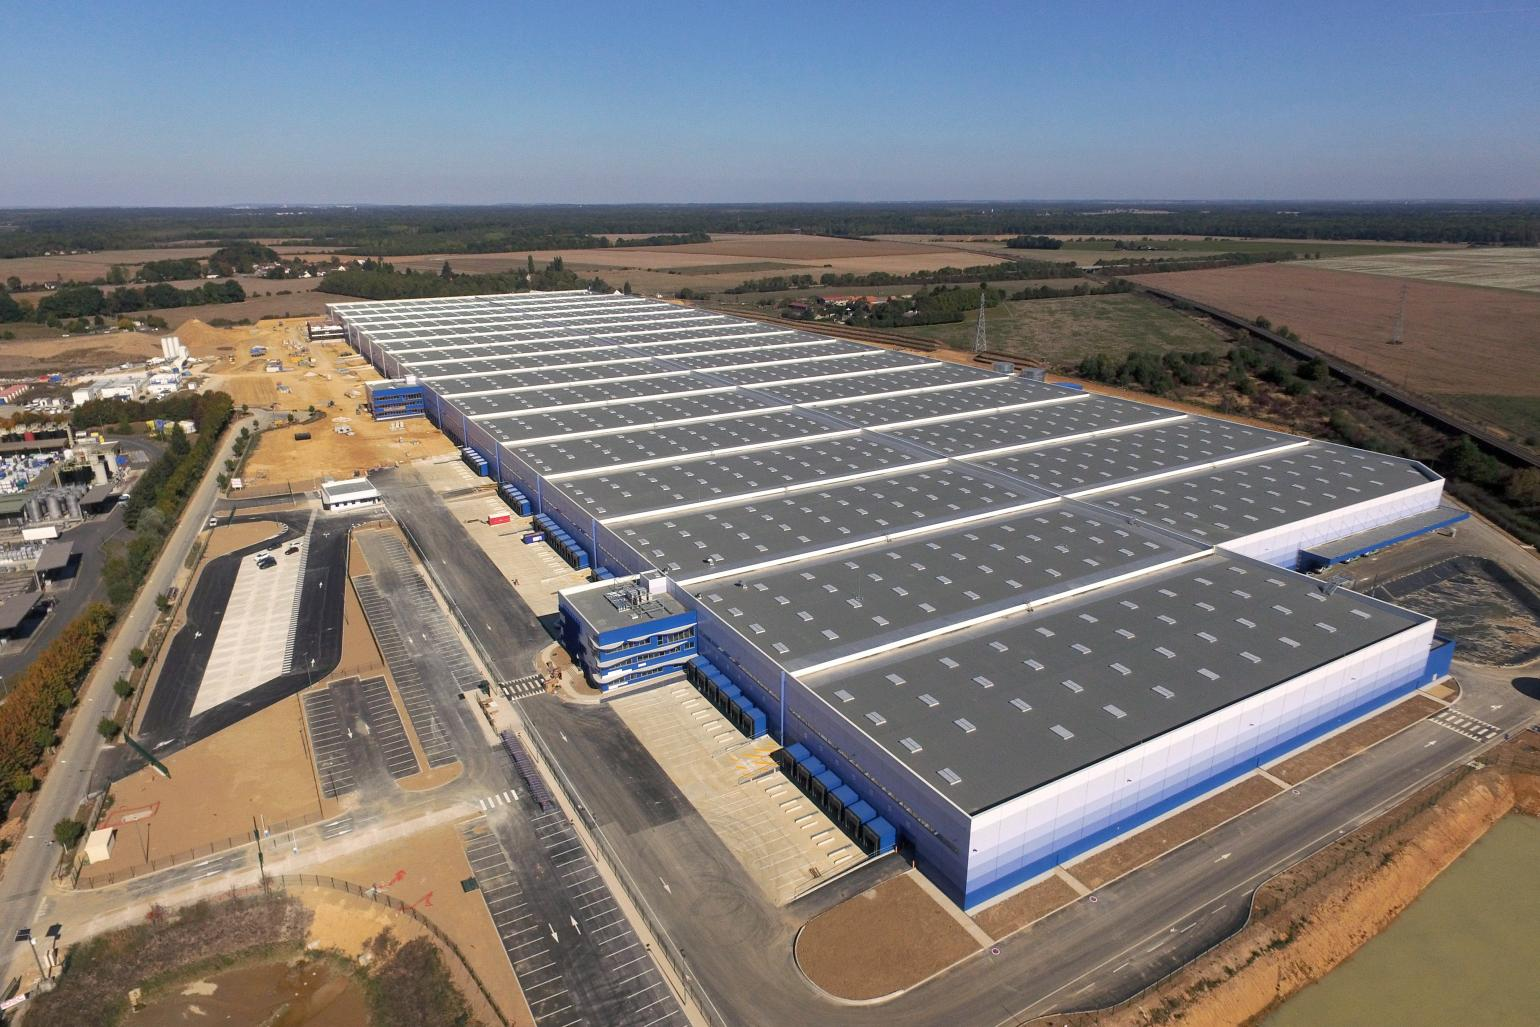 Construction of frances largest warehouse by idec: delivery of the